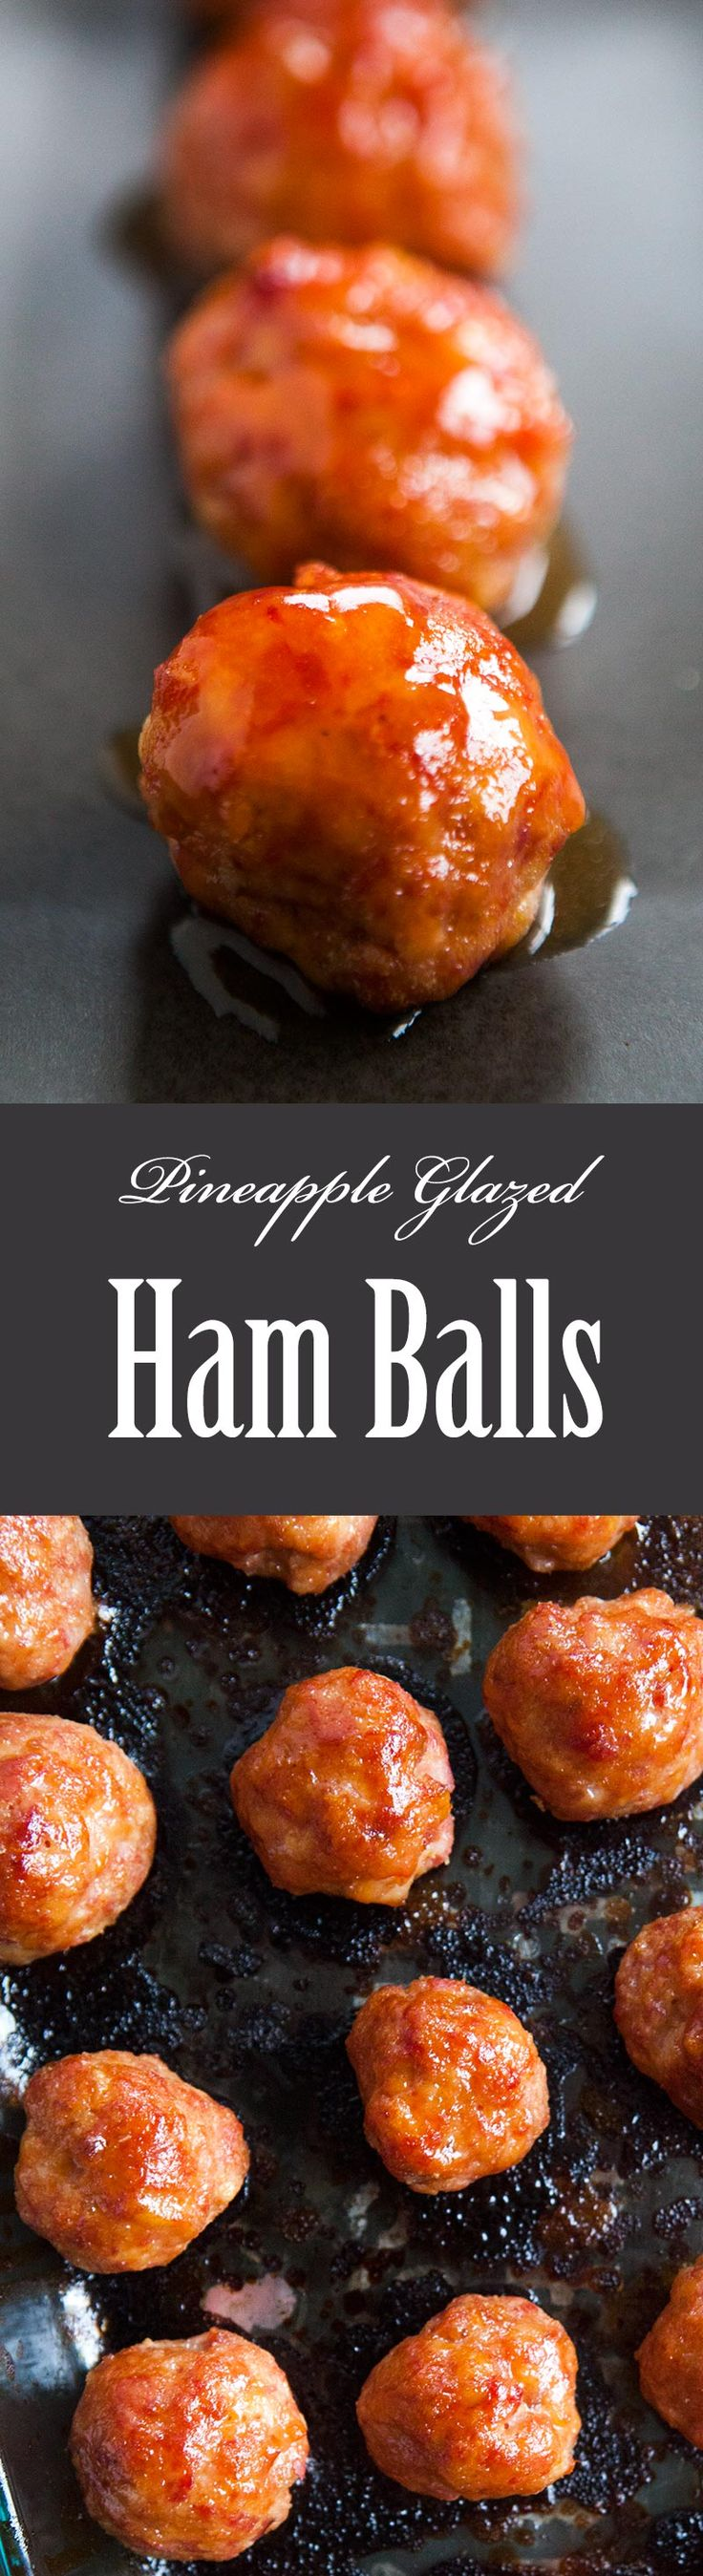 Ham balls! Made from ham, bacon and ground pork, and a pineapple juice glaze. Perfect appetizer for a holiday or game day crowd! On SimplyRecipes.com